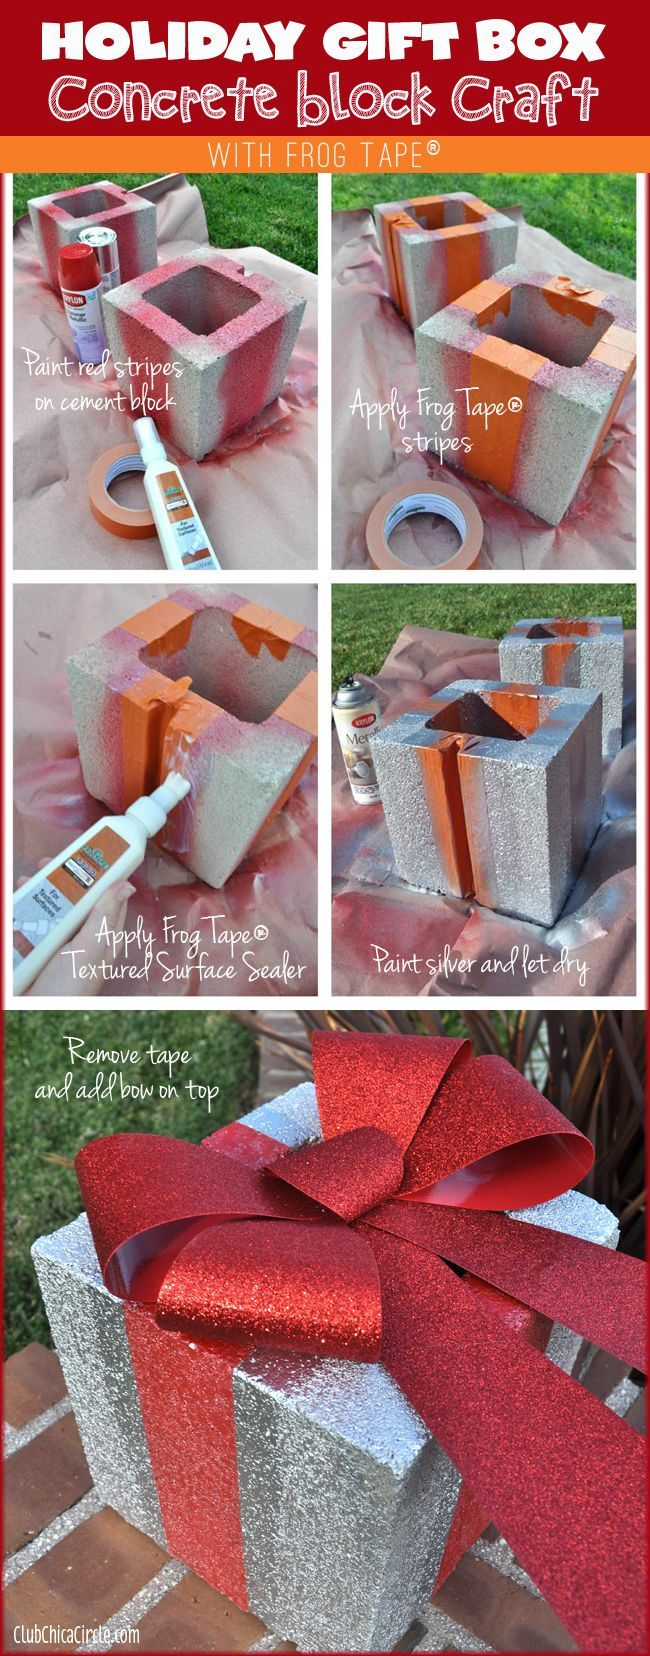 Holiday Gift Box Concrete Brick Tutorial: It's a really great way to add some fun holiday decor to the outside of your home. Turned simple concrete blocks into a fun holiday gift boxes. So cute!